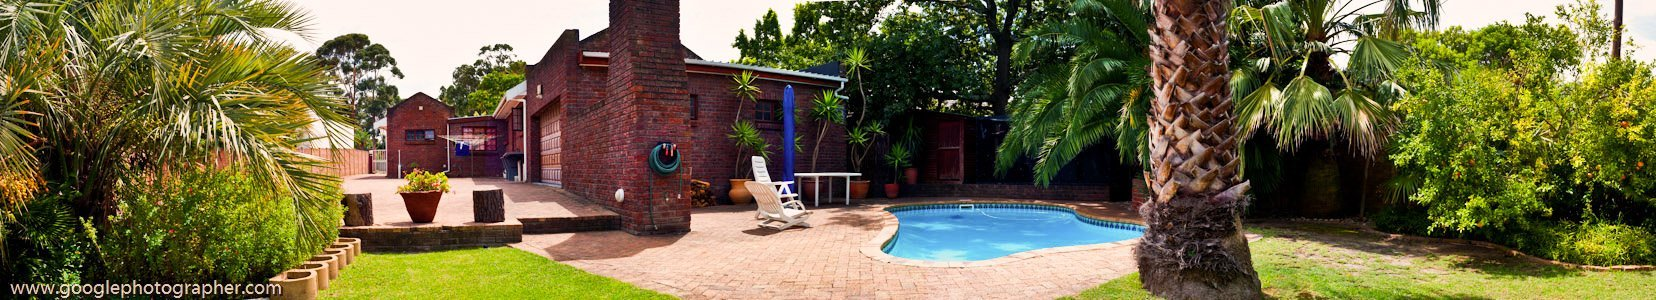 Panoramic 180 deg Backyard Property Photography